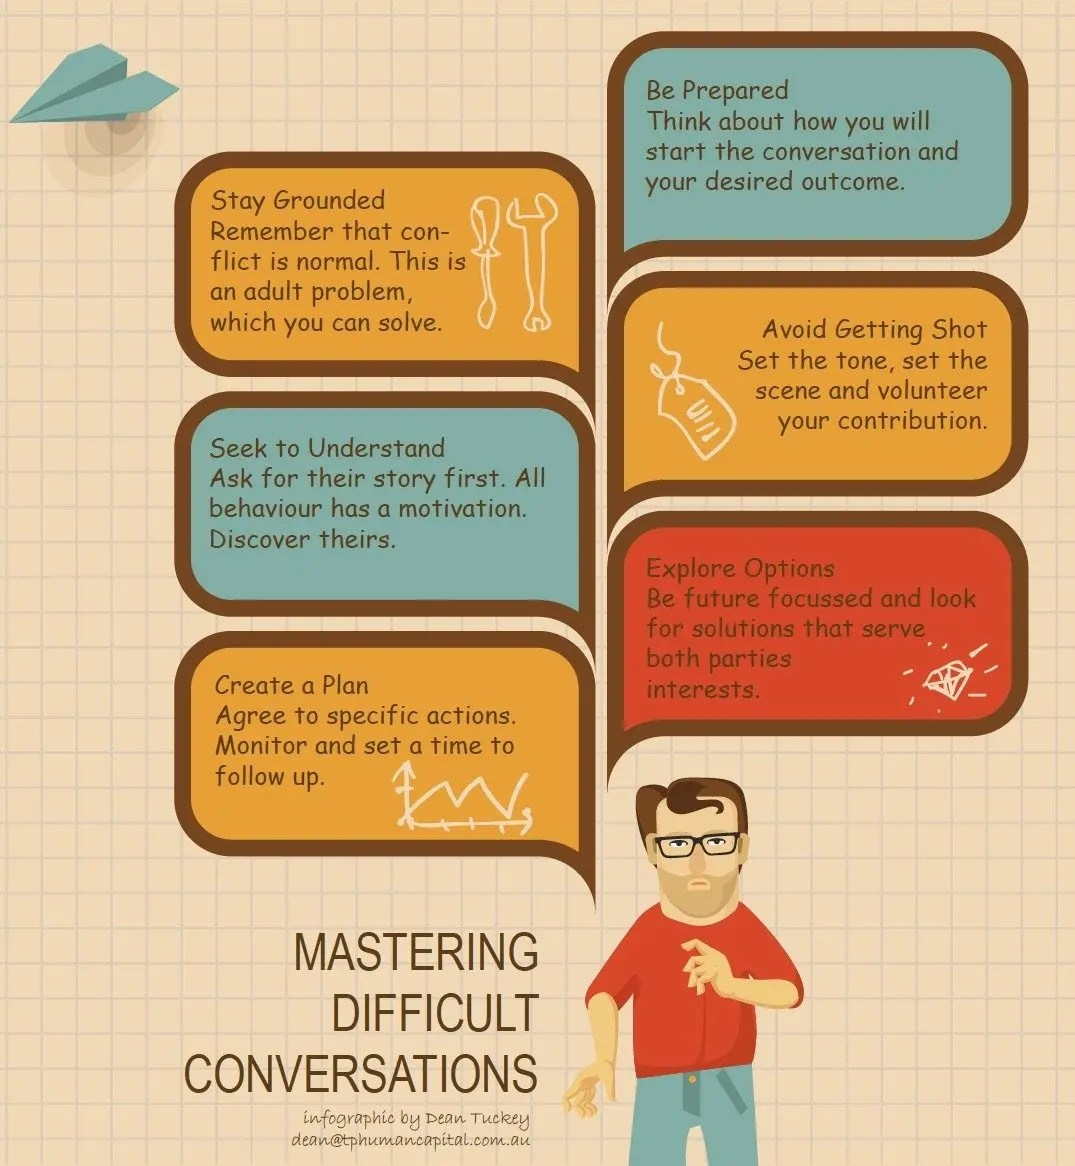 Mastering difficult conversations infographic.  Dean Tuckey, TP Human Capital